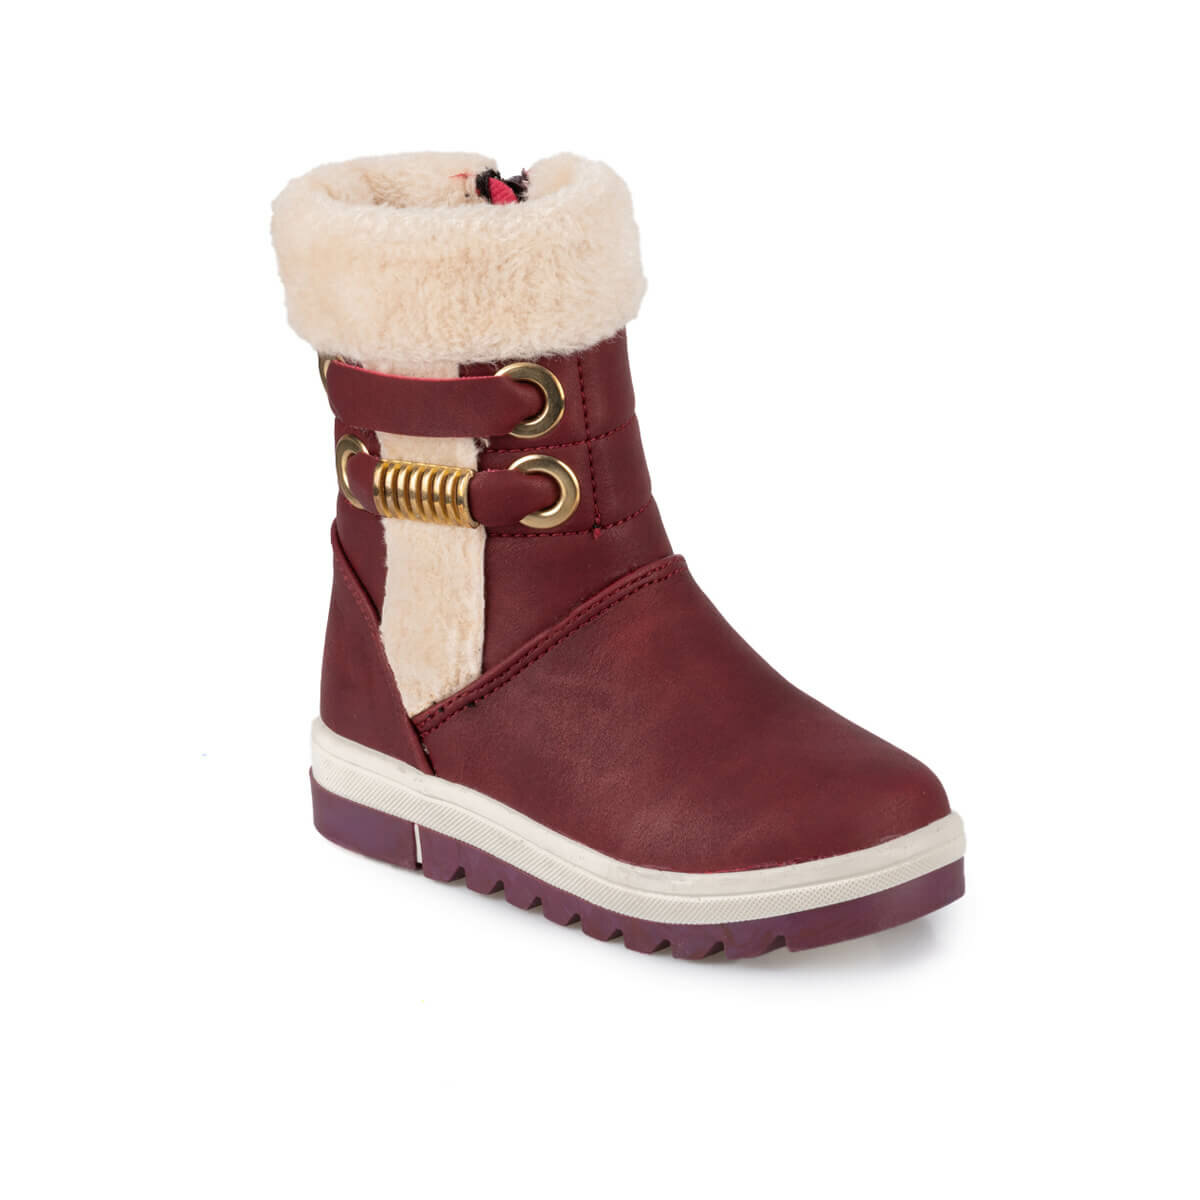 FLO SINNER 9PR Burgundy Female Child Boots KINETIX